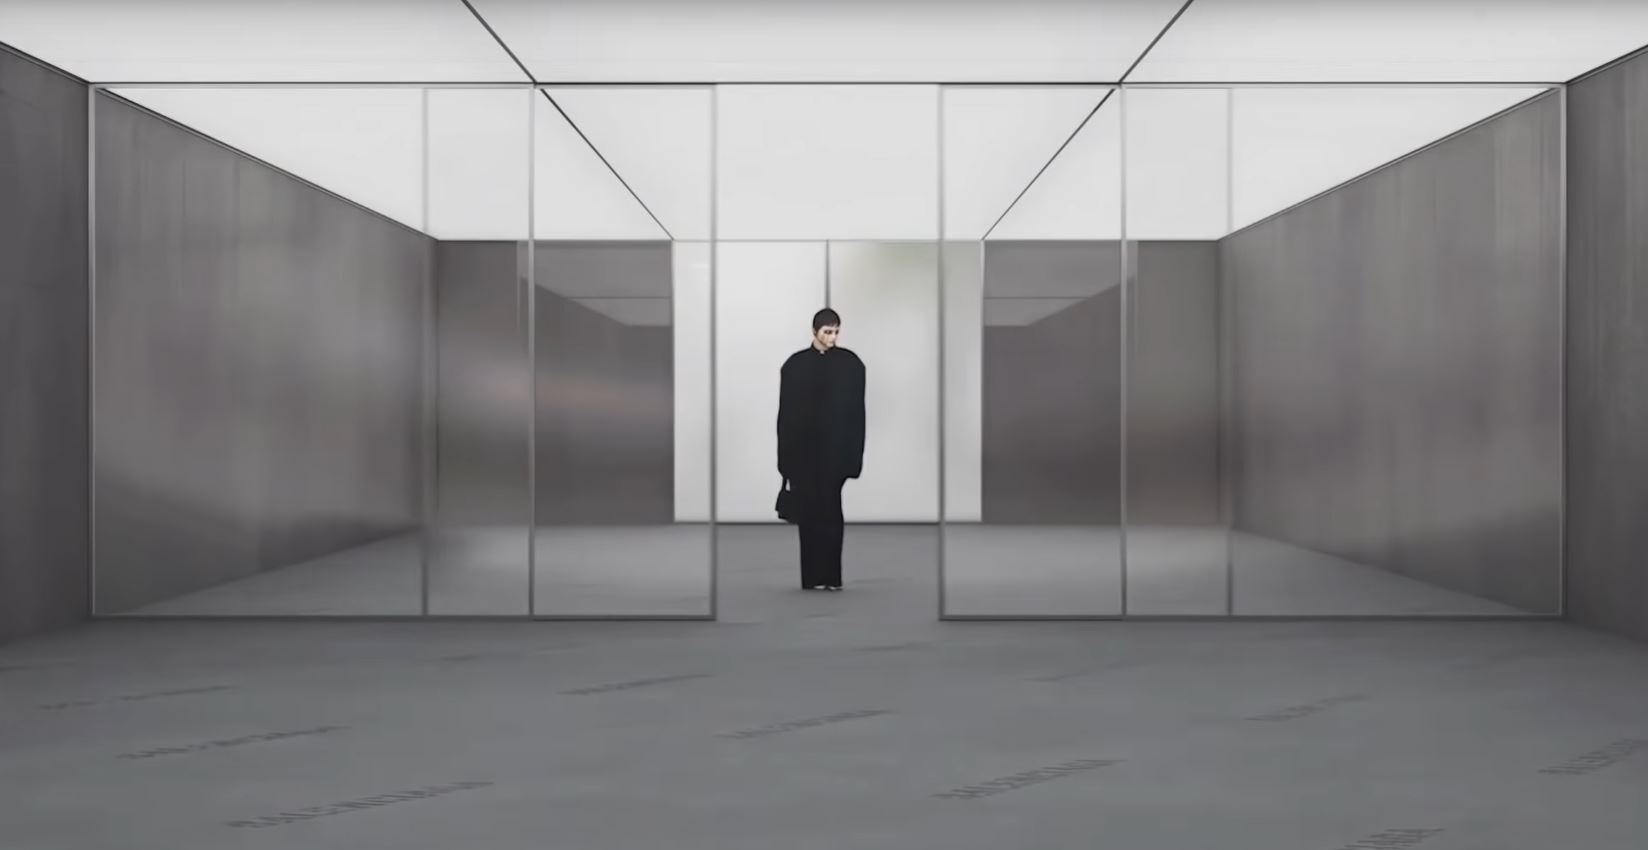 Would you try on your jeans in here? A still from the video promoting Balenciaga's new game.